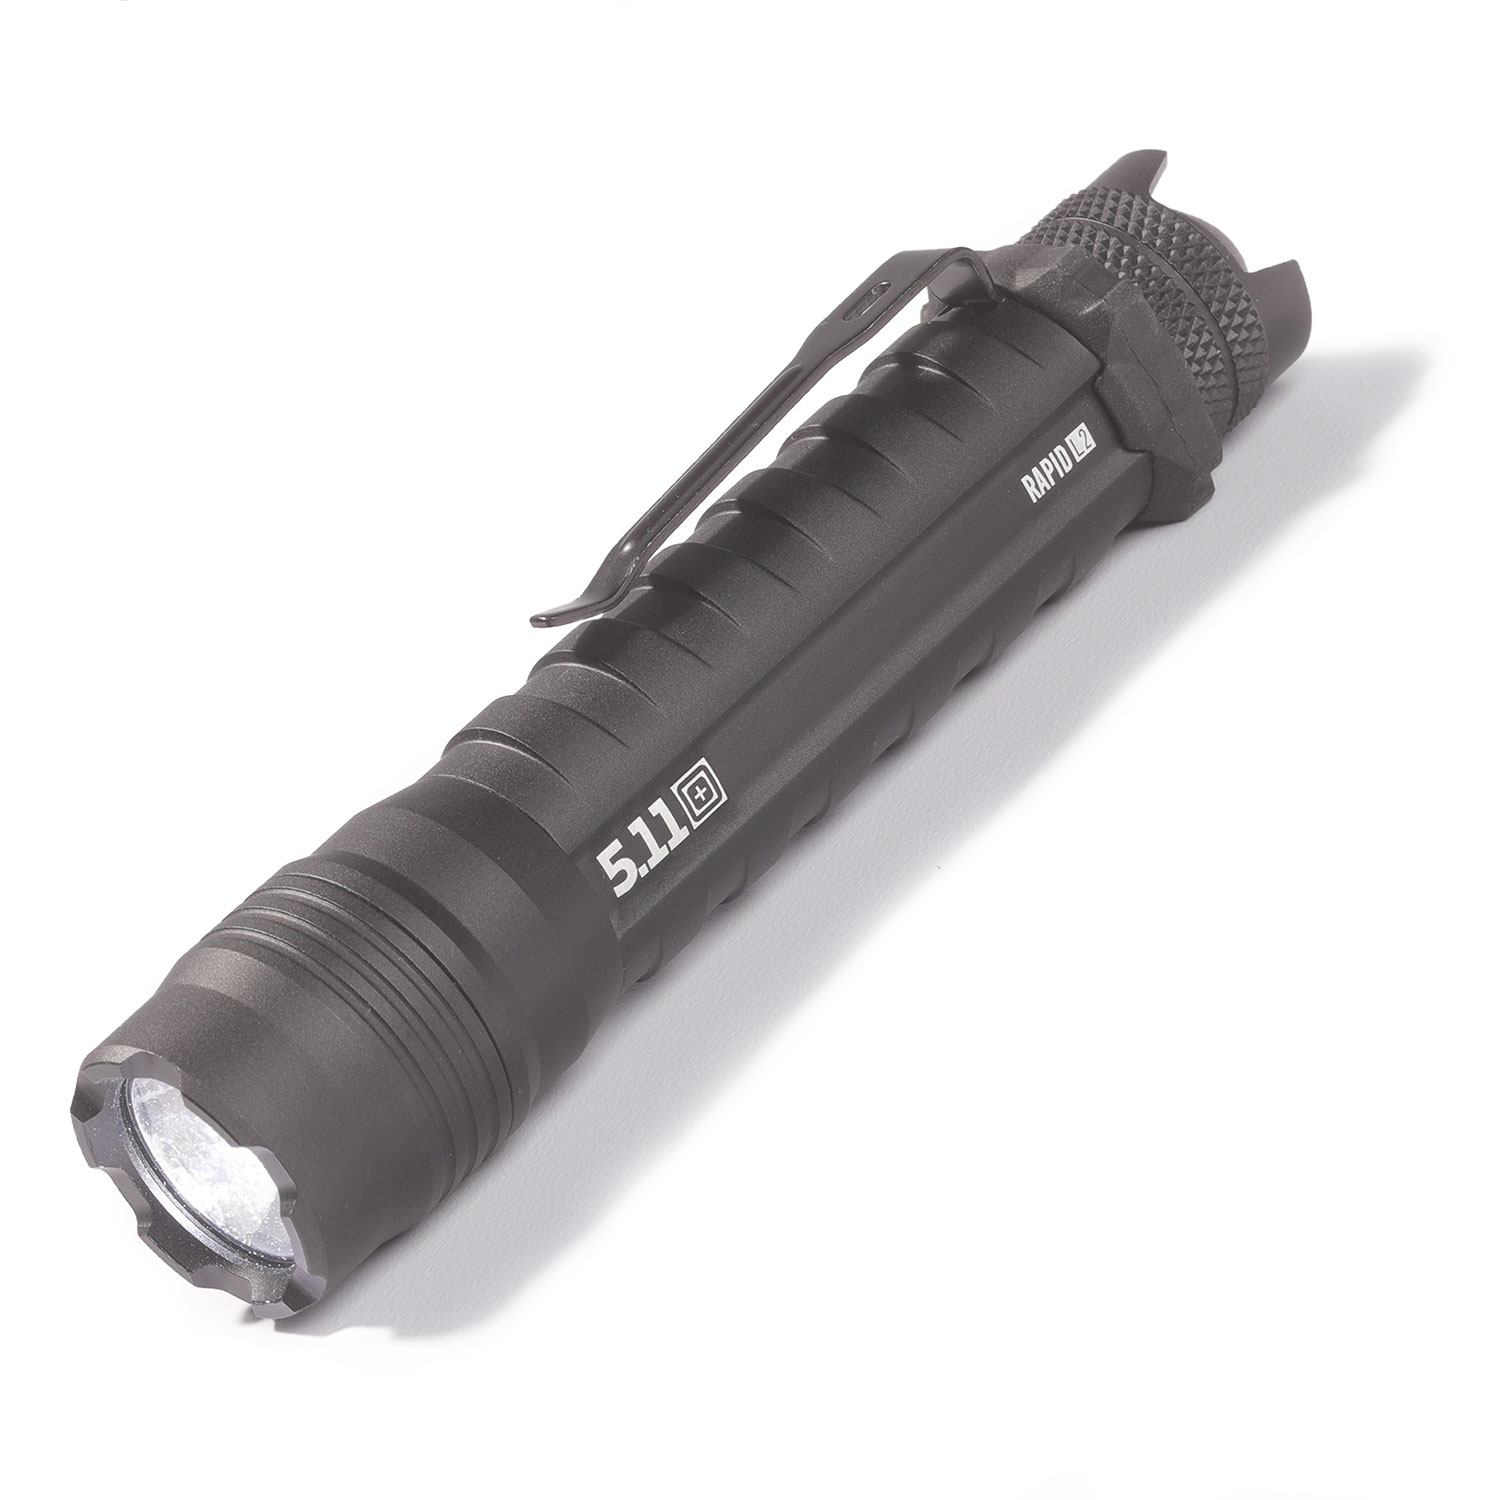 5.11 Rapid L2 Tactical Flashlight